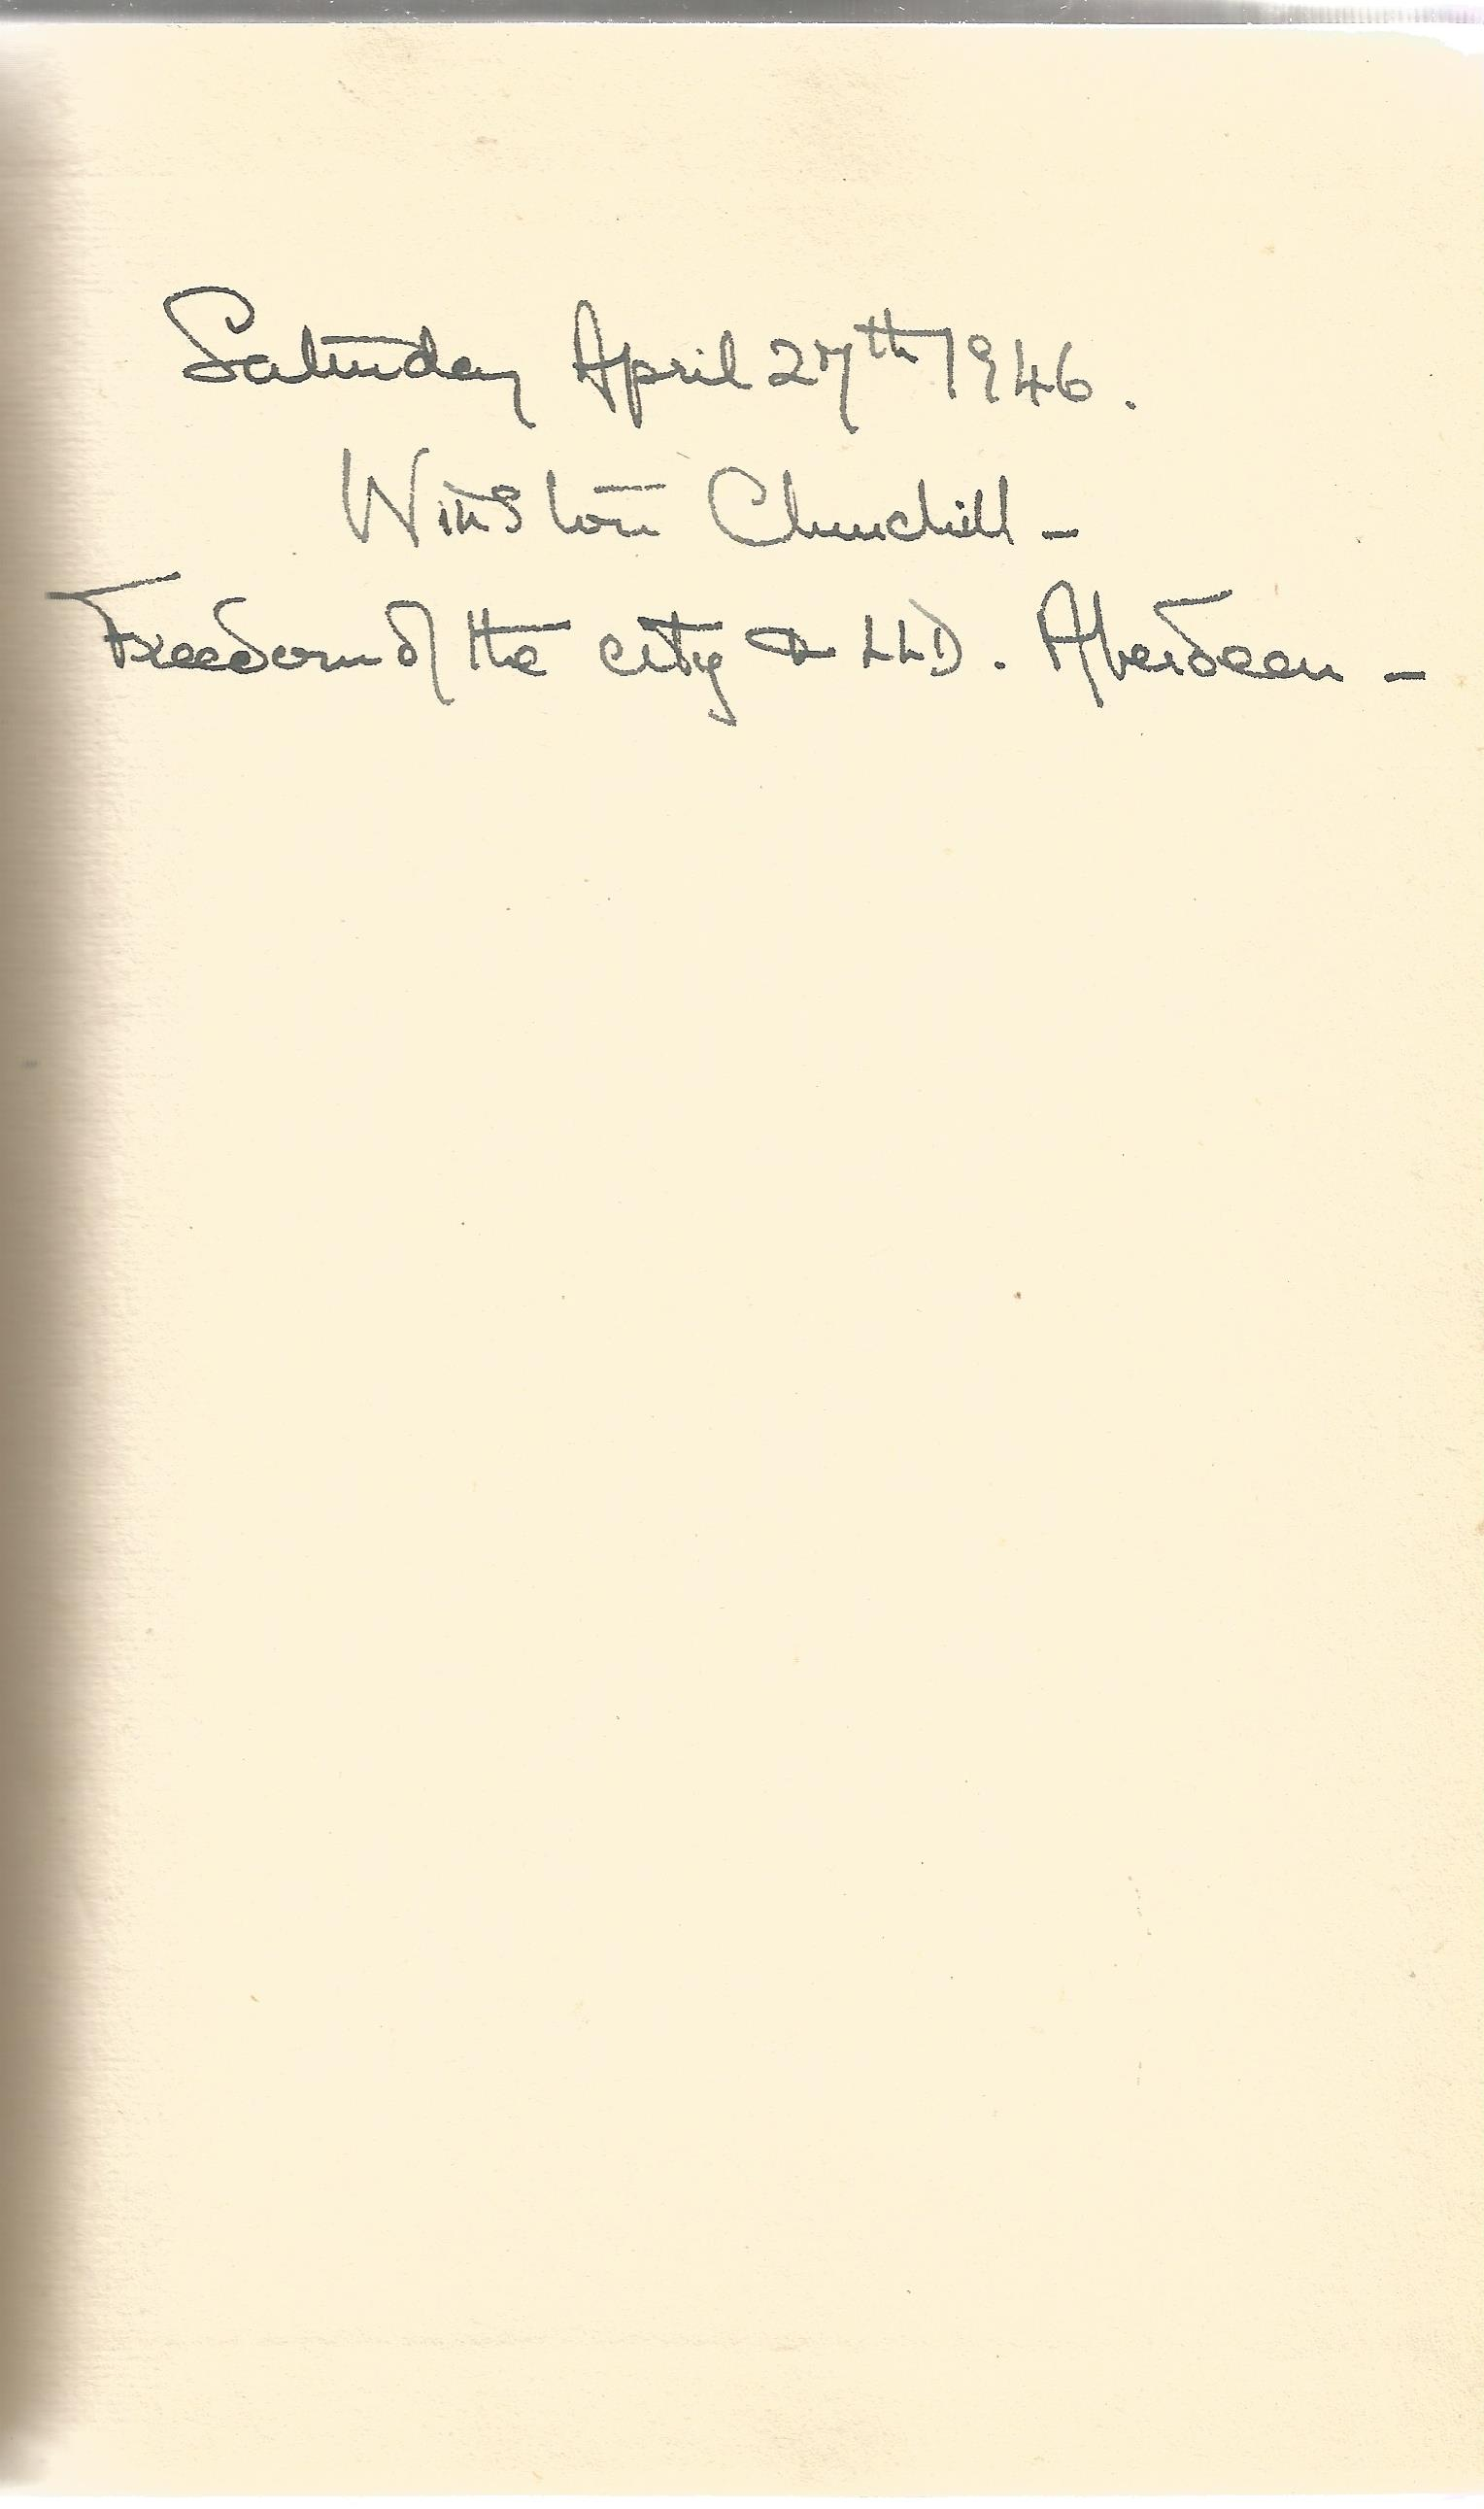 Hardback Book This Thing Called Ballet by George Borodin published by Macdonald & Co (Publishers) - Image 3 of 3